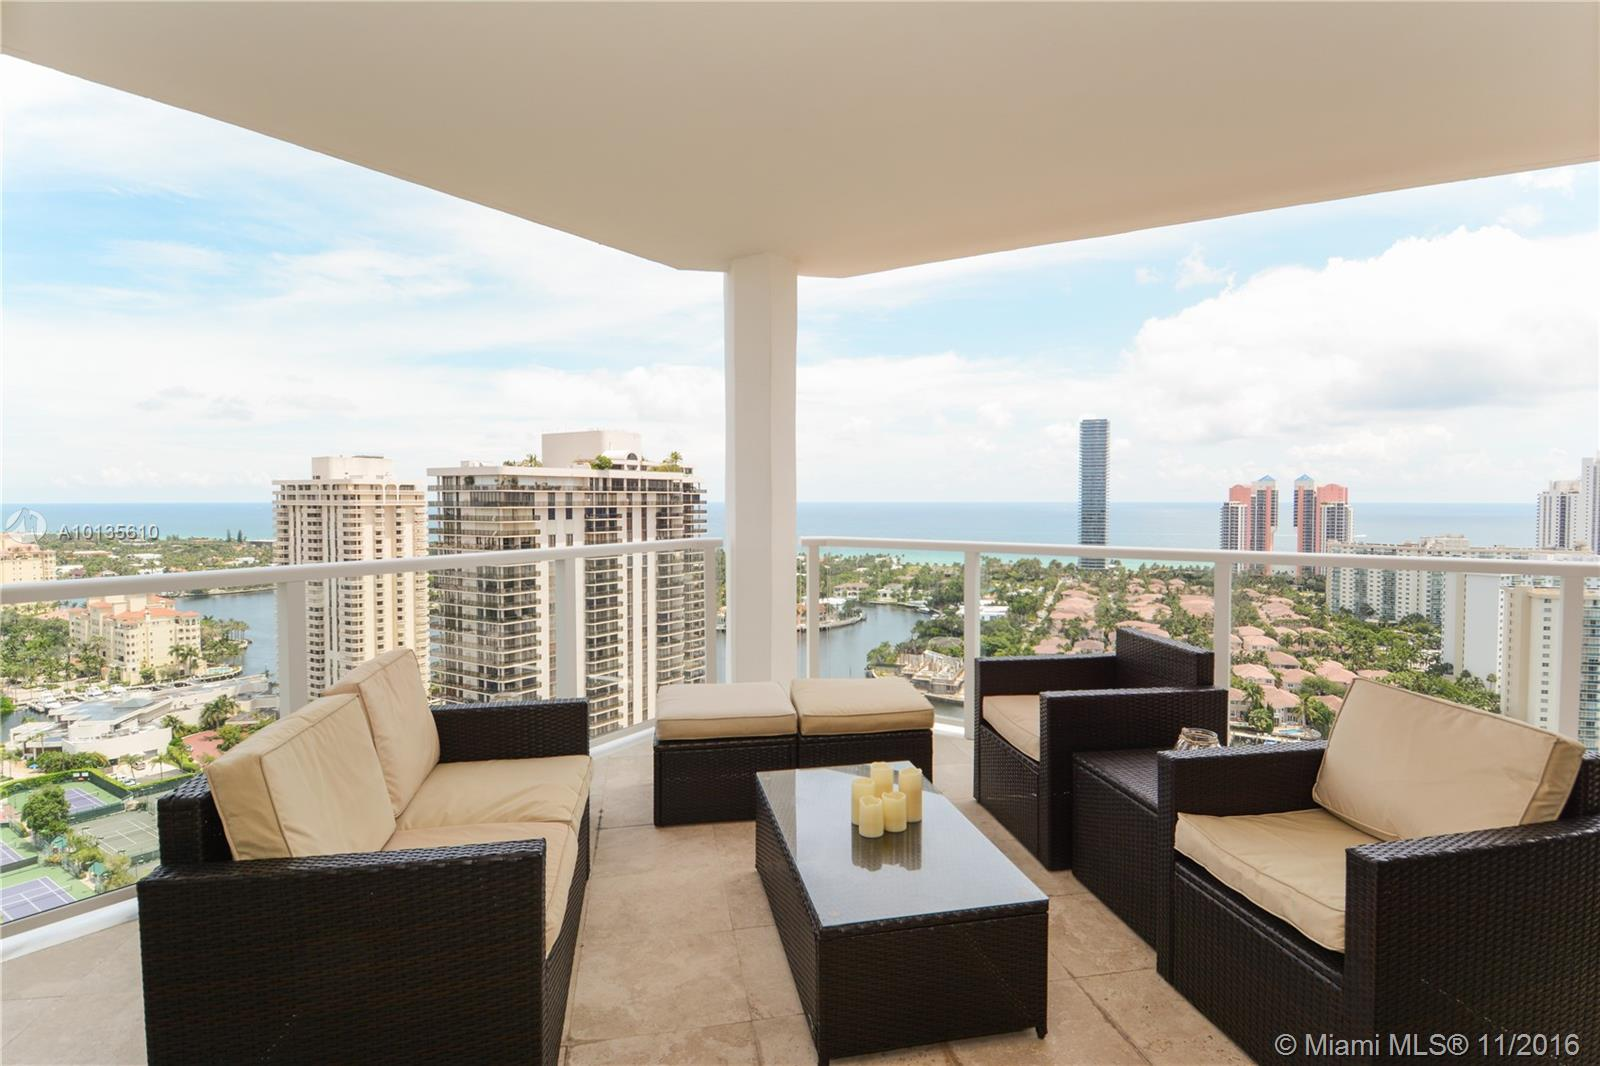 19500 Turnberry way-26AB aventura--fl-33180-a10135610-Pic05